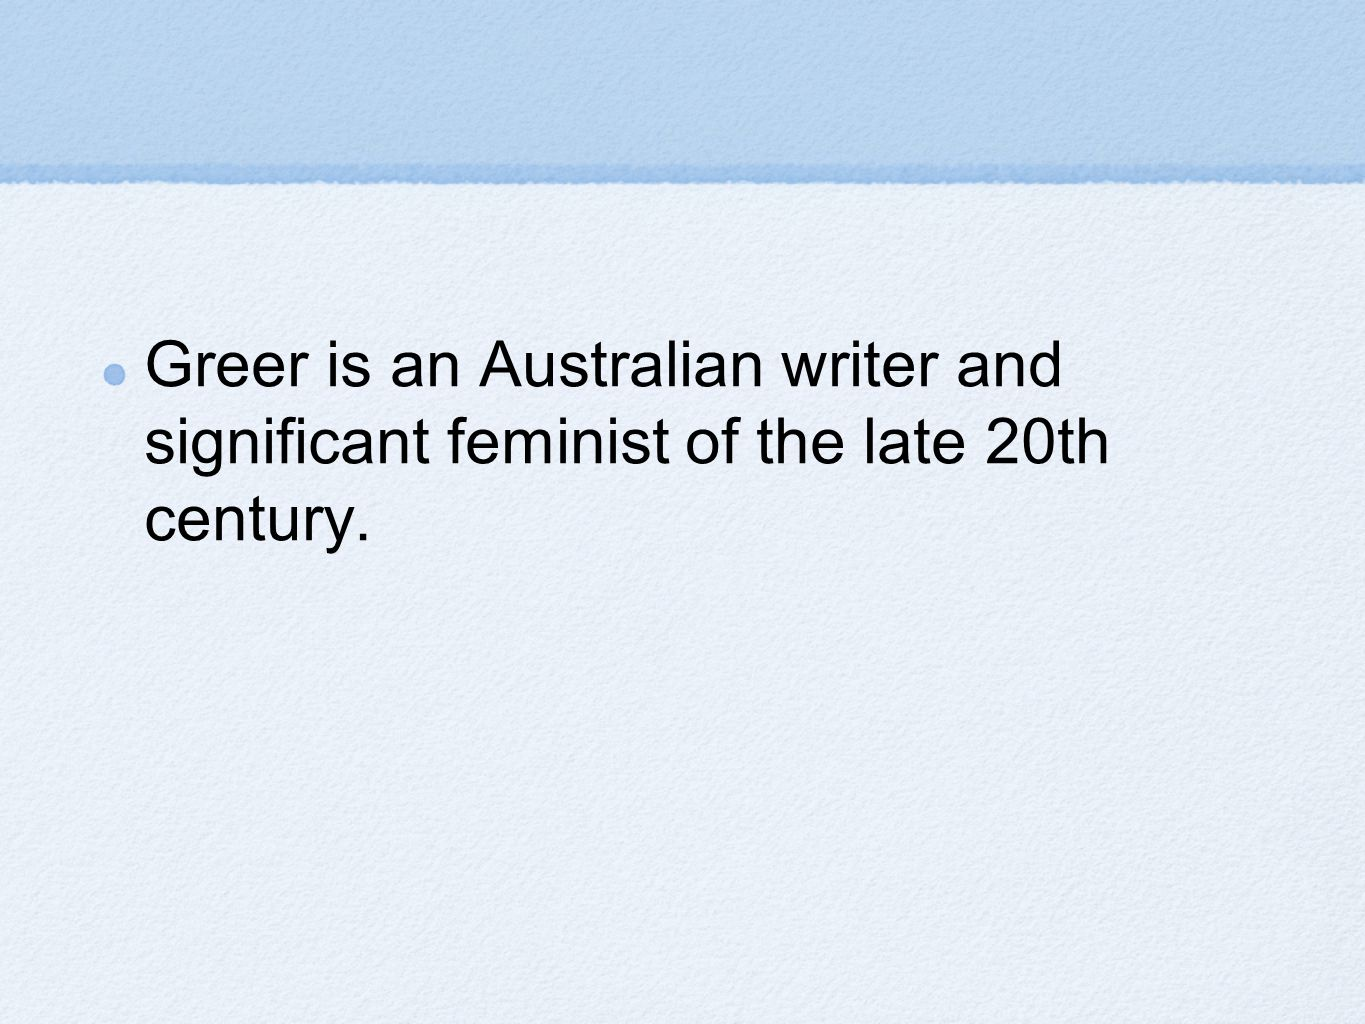 Greer is an Australian writer and significant feminist of the late 20th century.